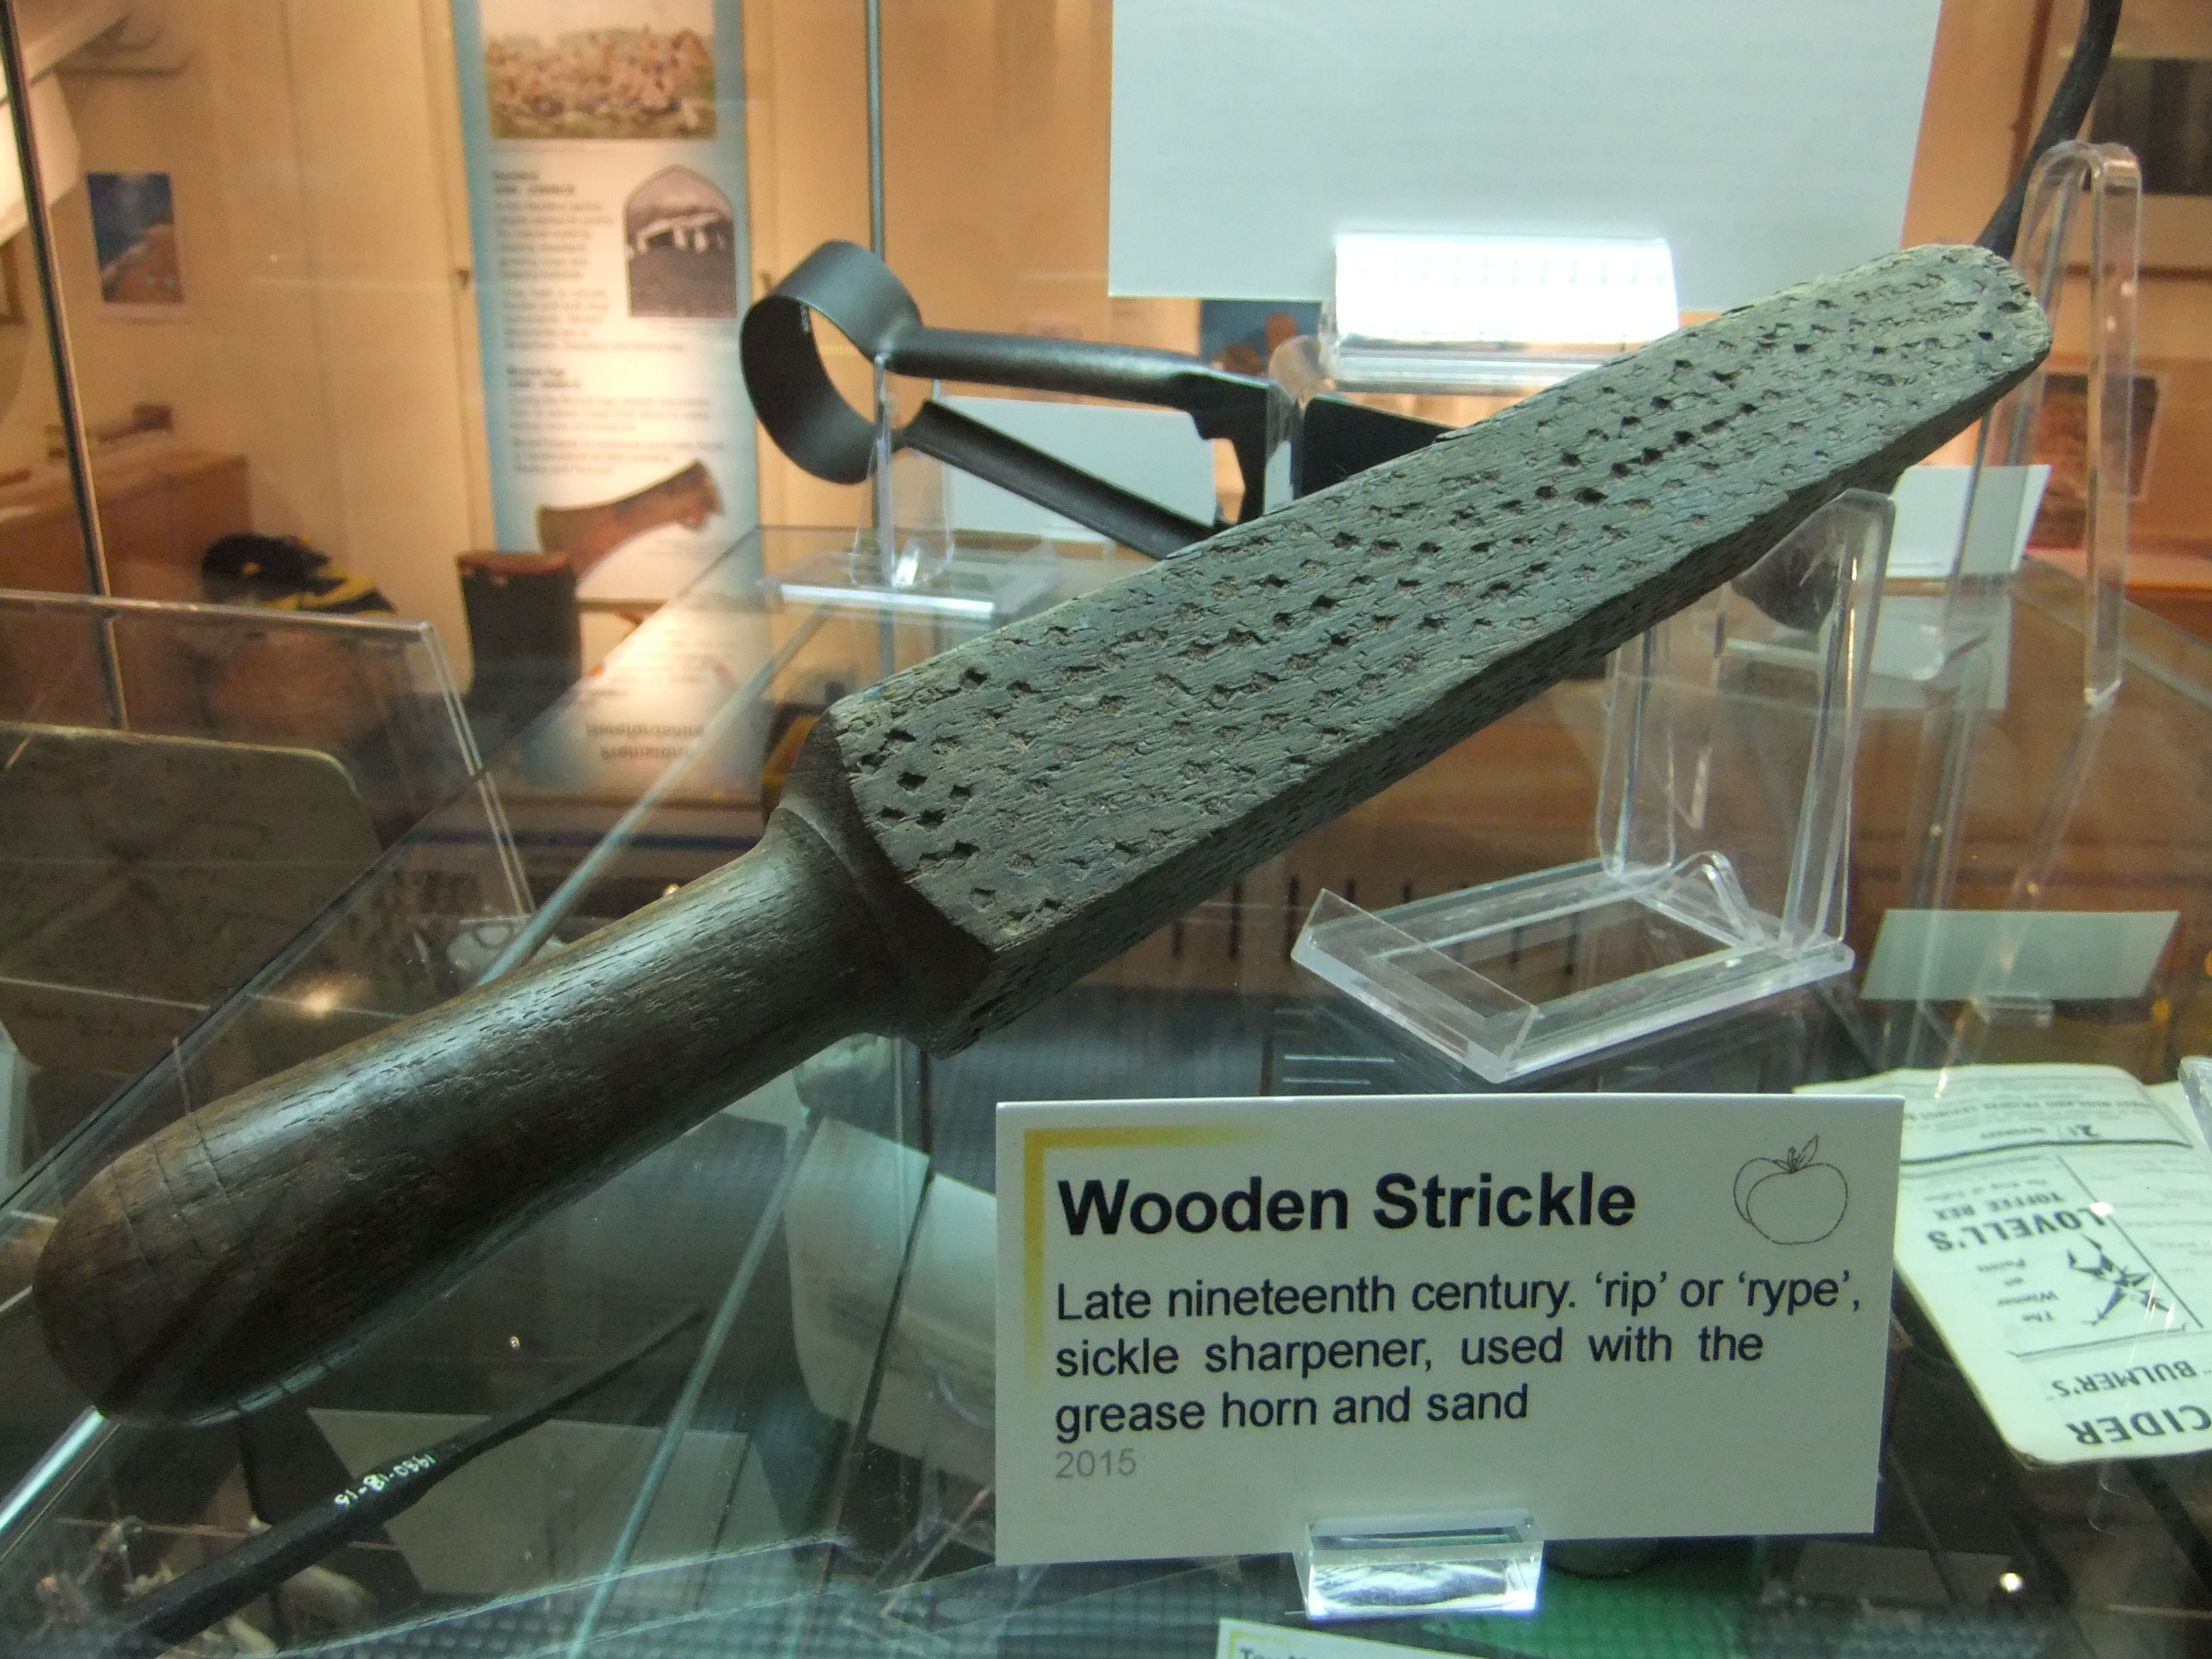 Wooden strickle